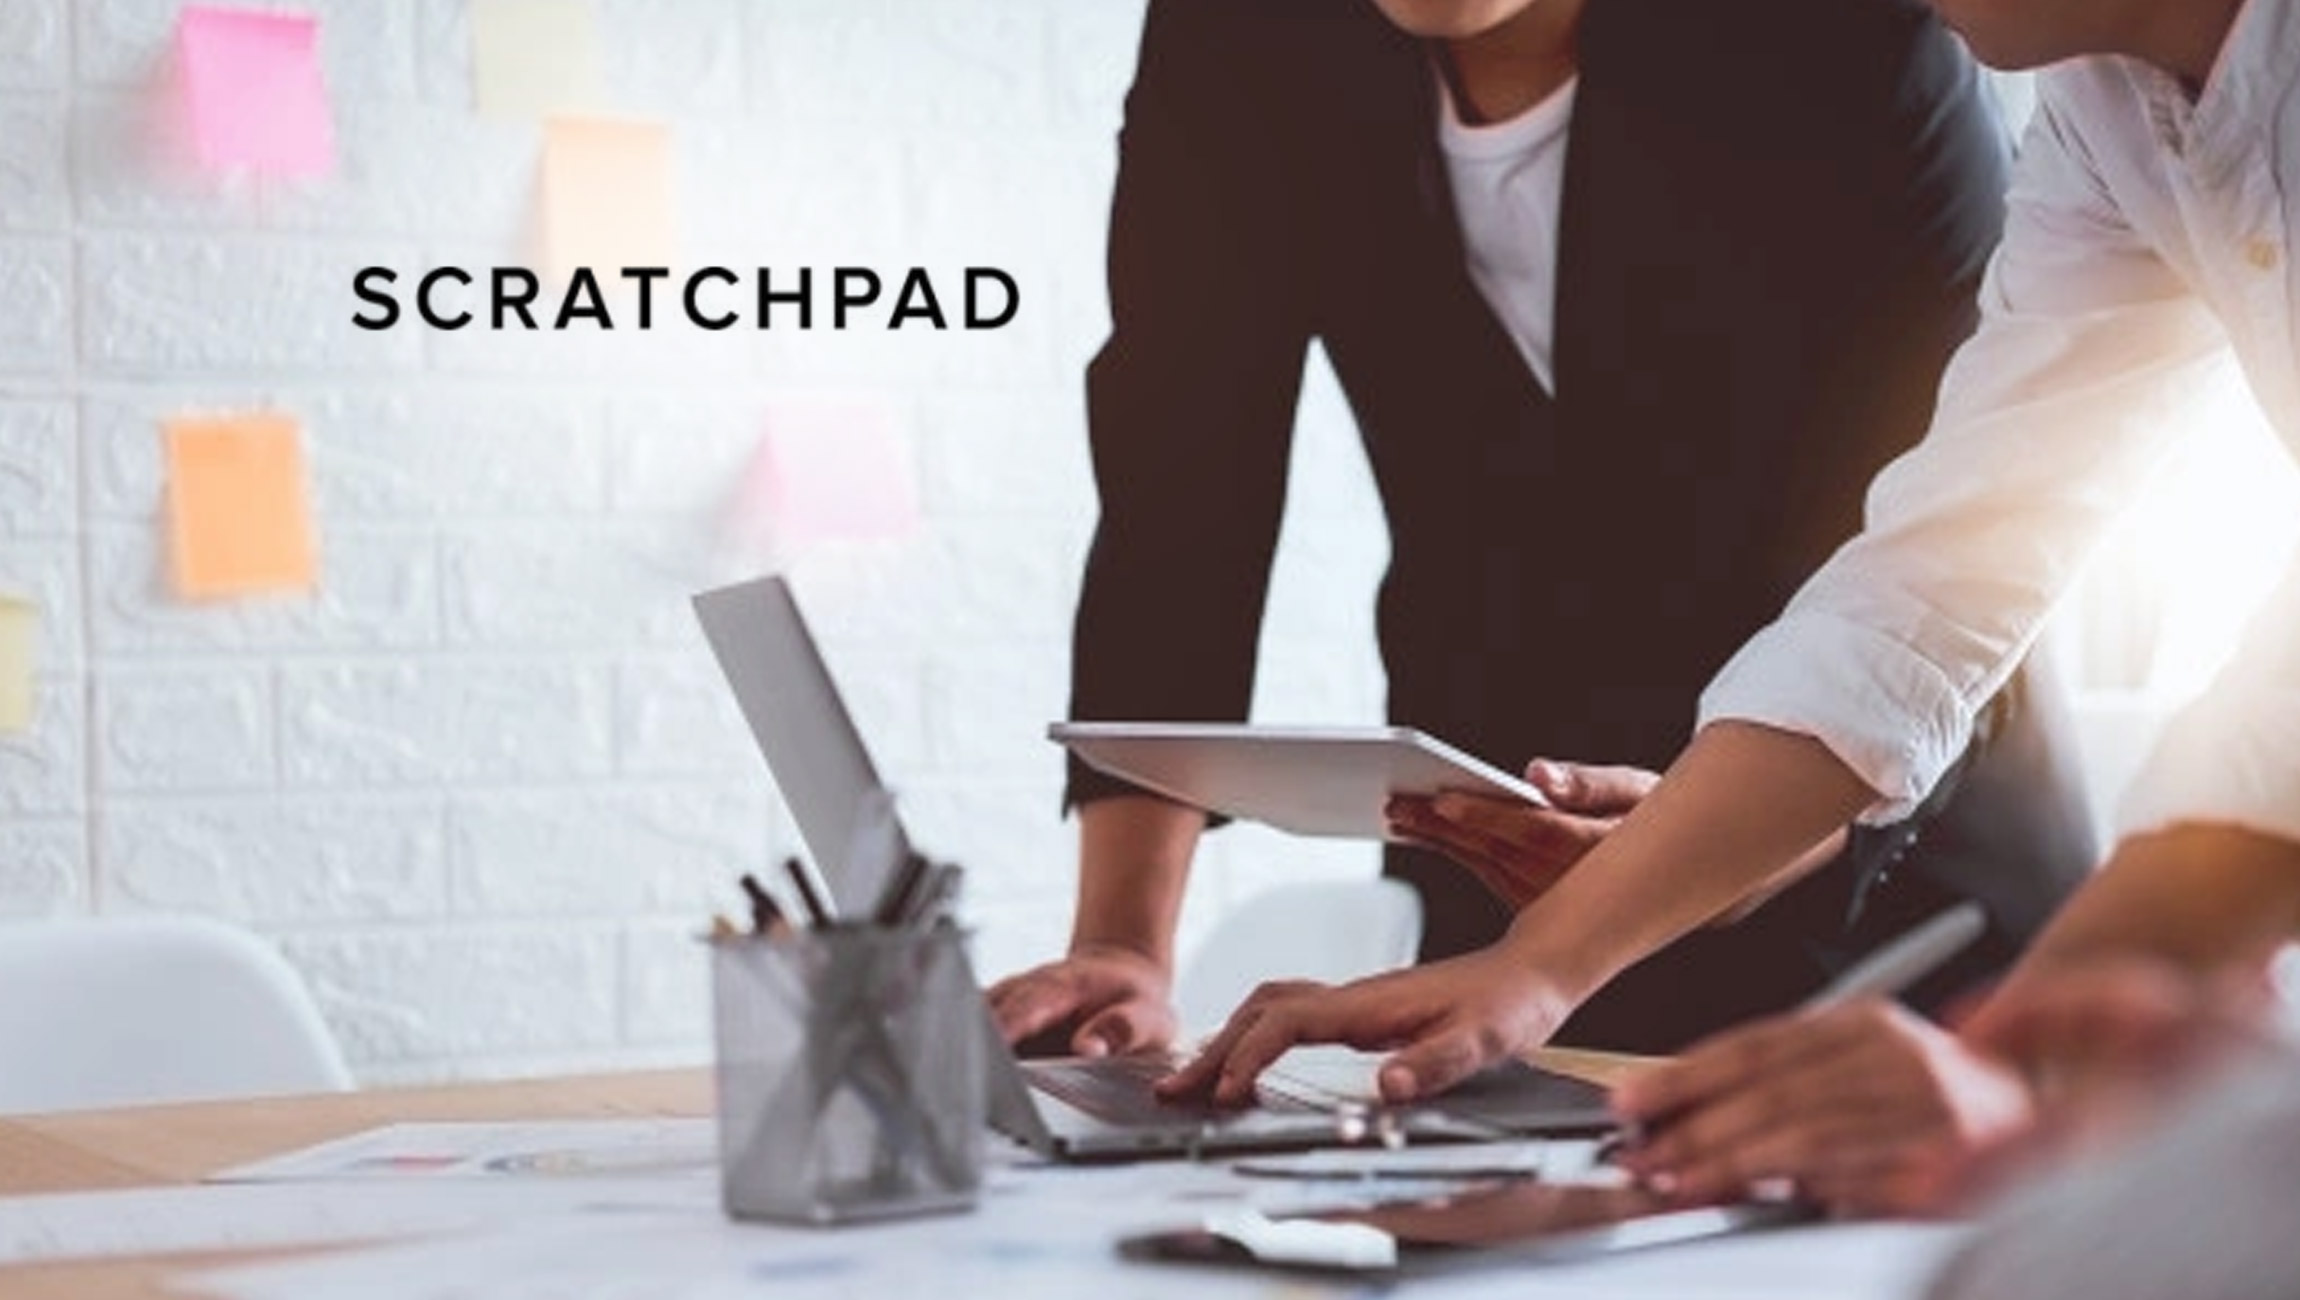 Scratchpad Introduces New Experience for Top Sales Performers, Connecting Calendar, Notes, and Salesforce into One Unified Workspace